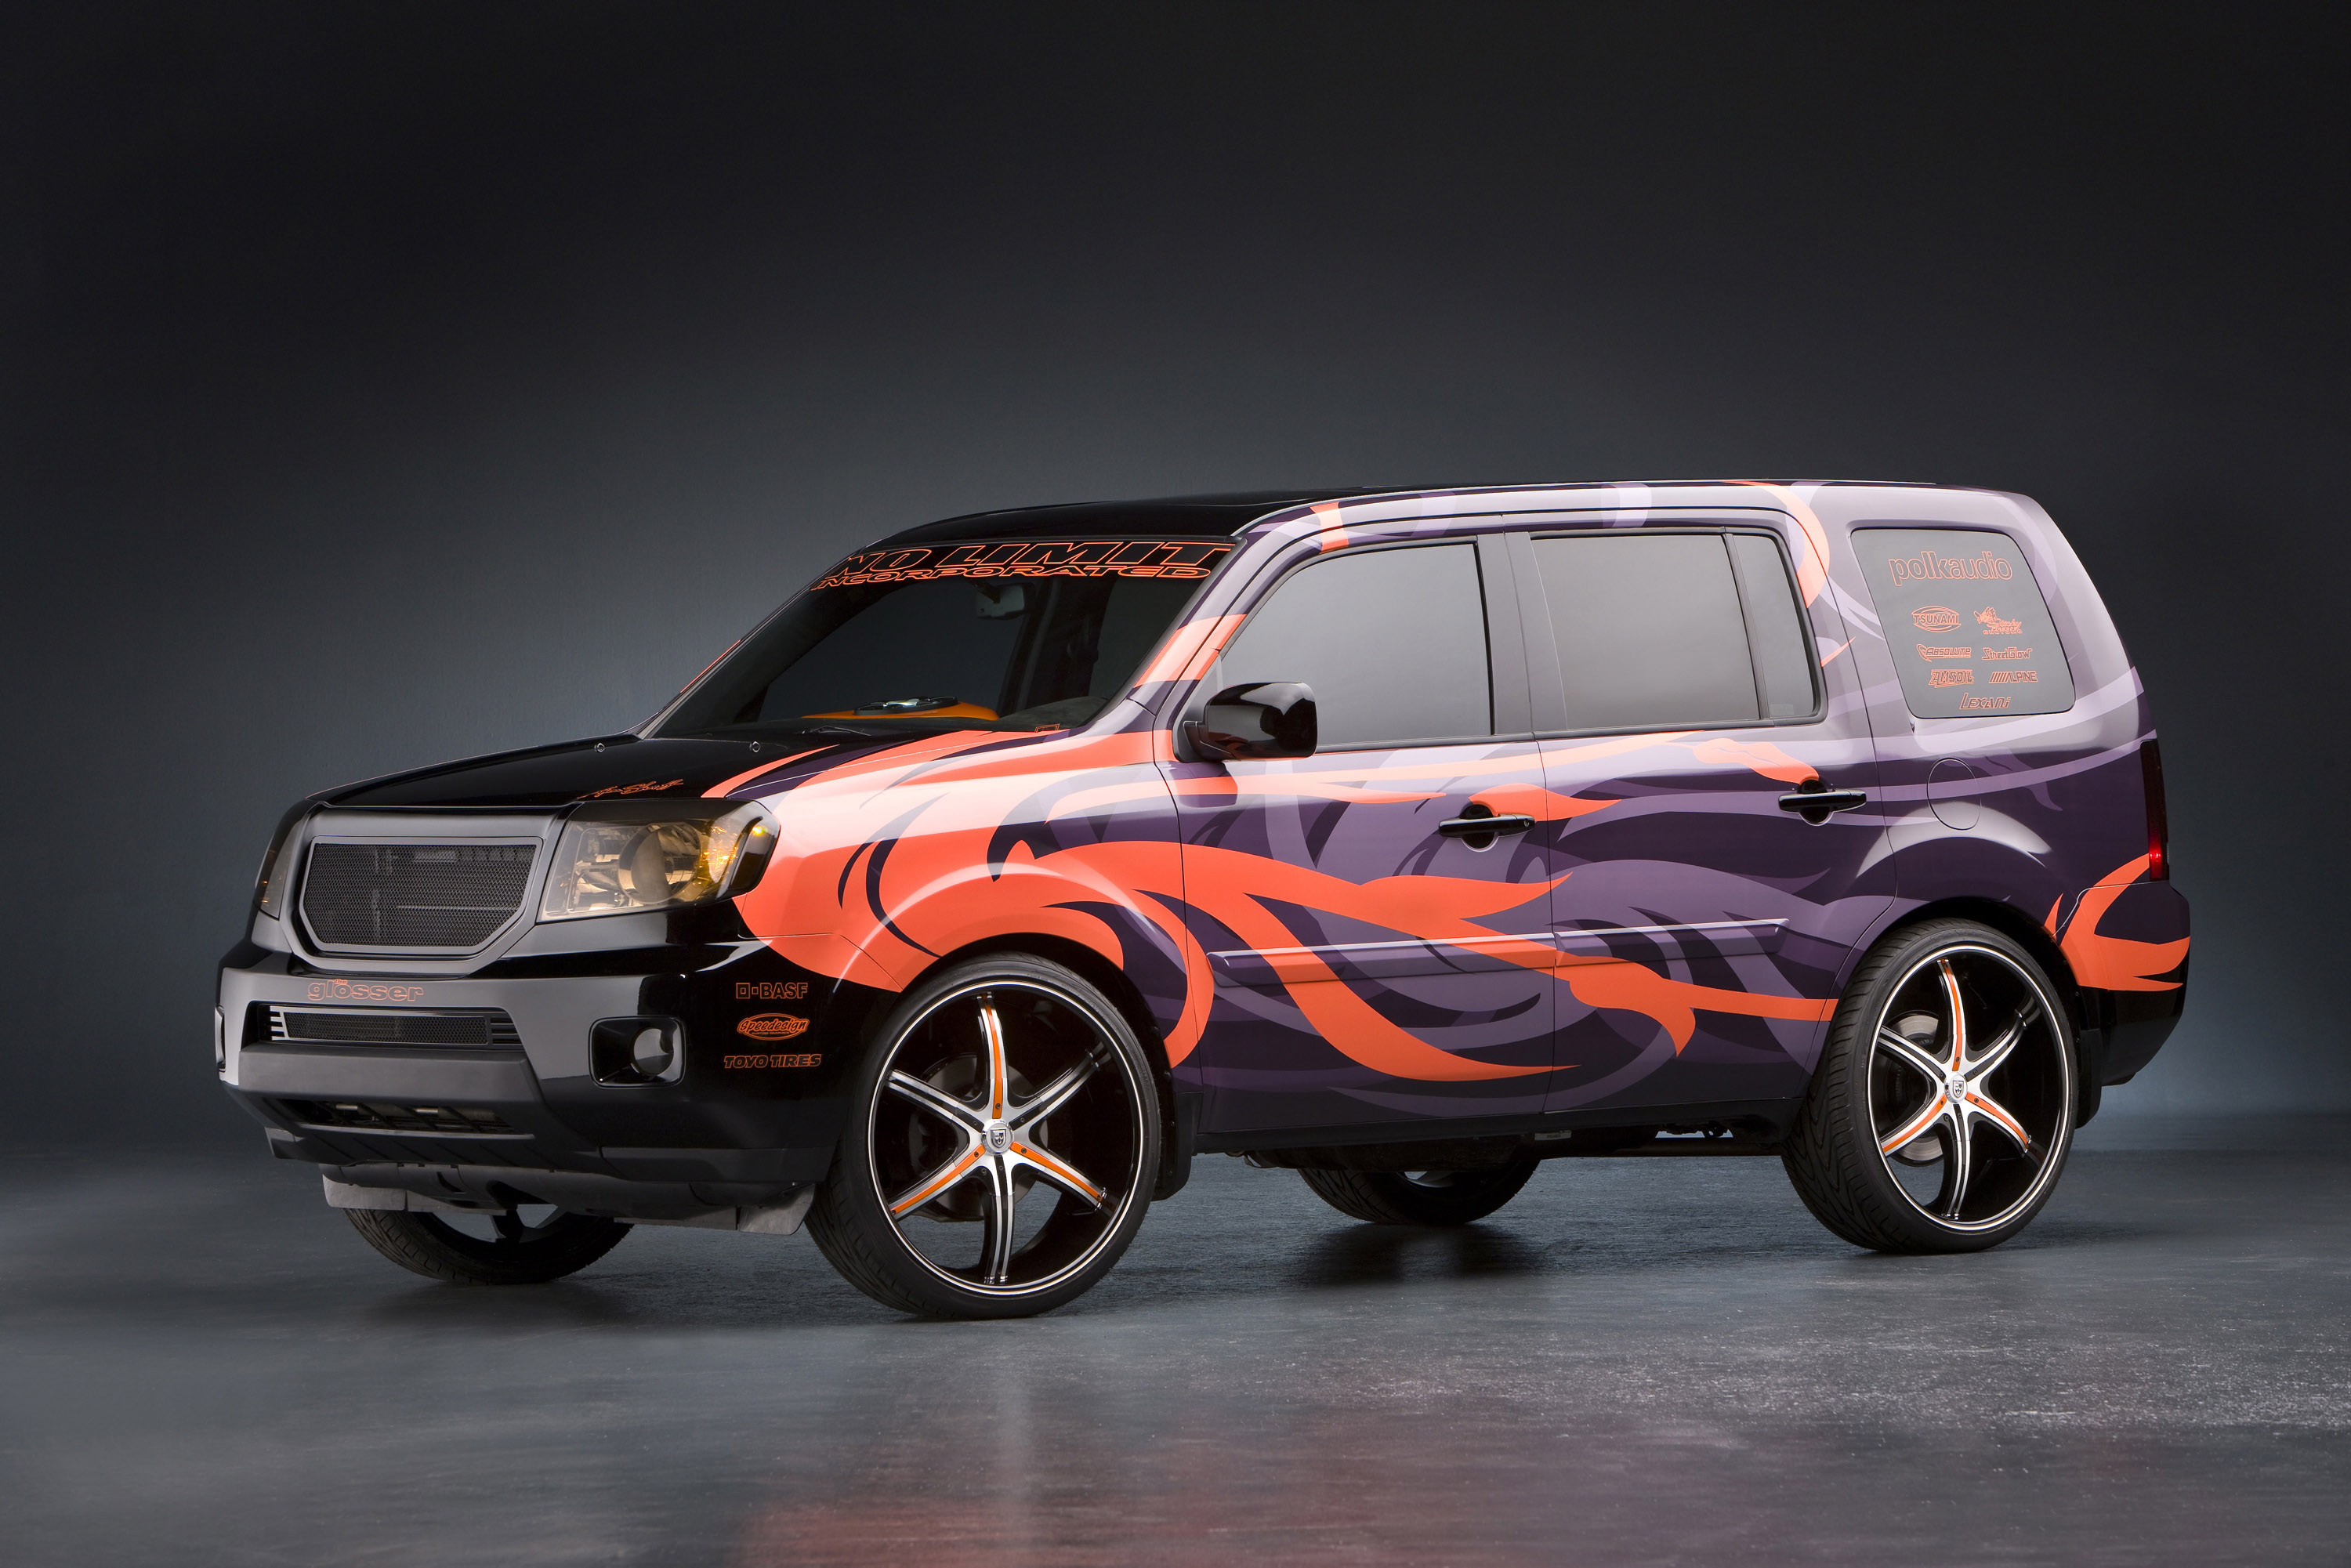 Honda Reveals Accessory Concepts For Civic And Ridgeline